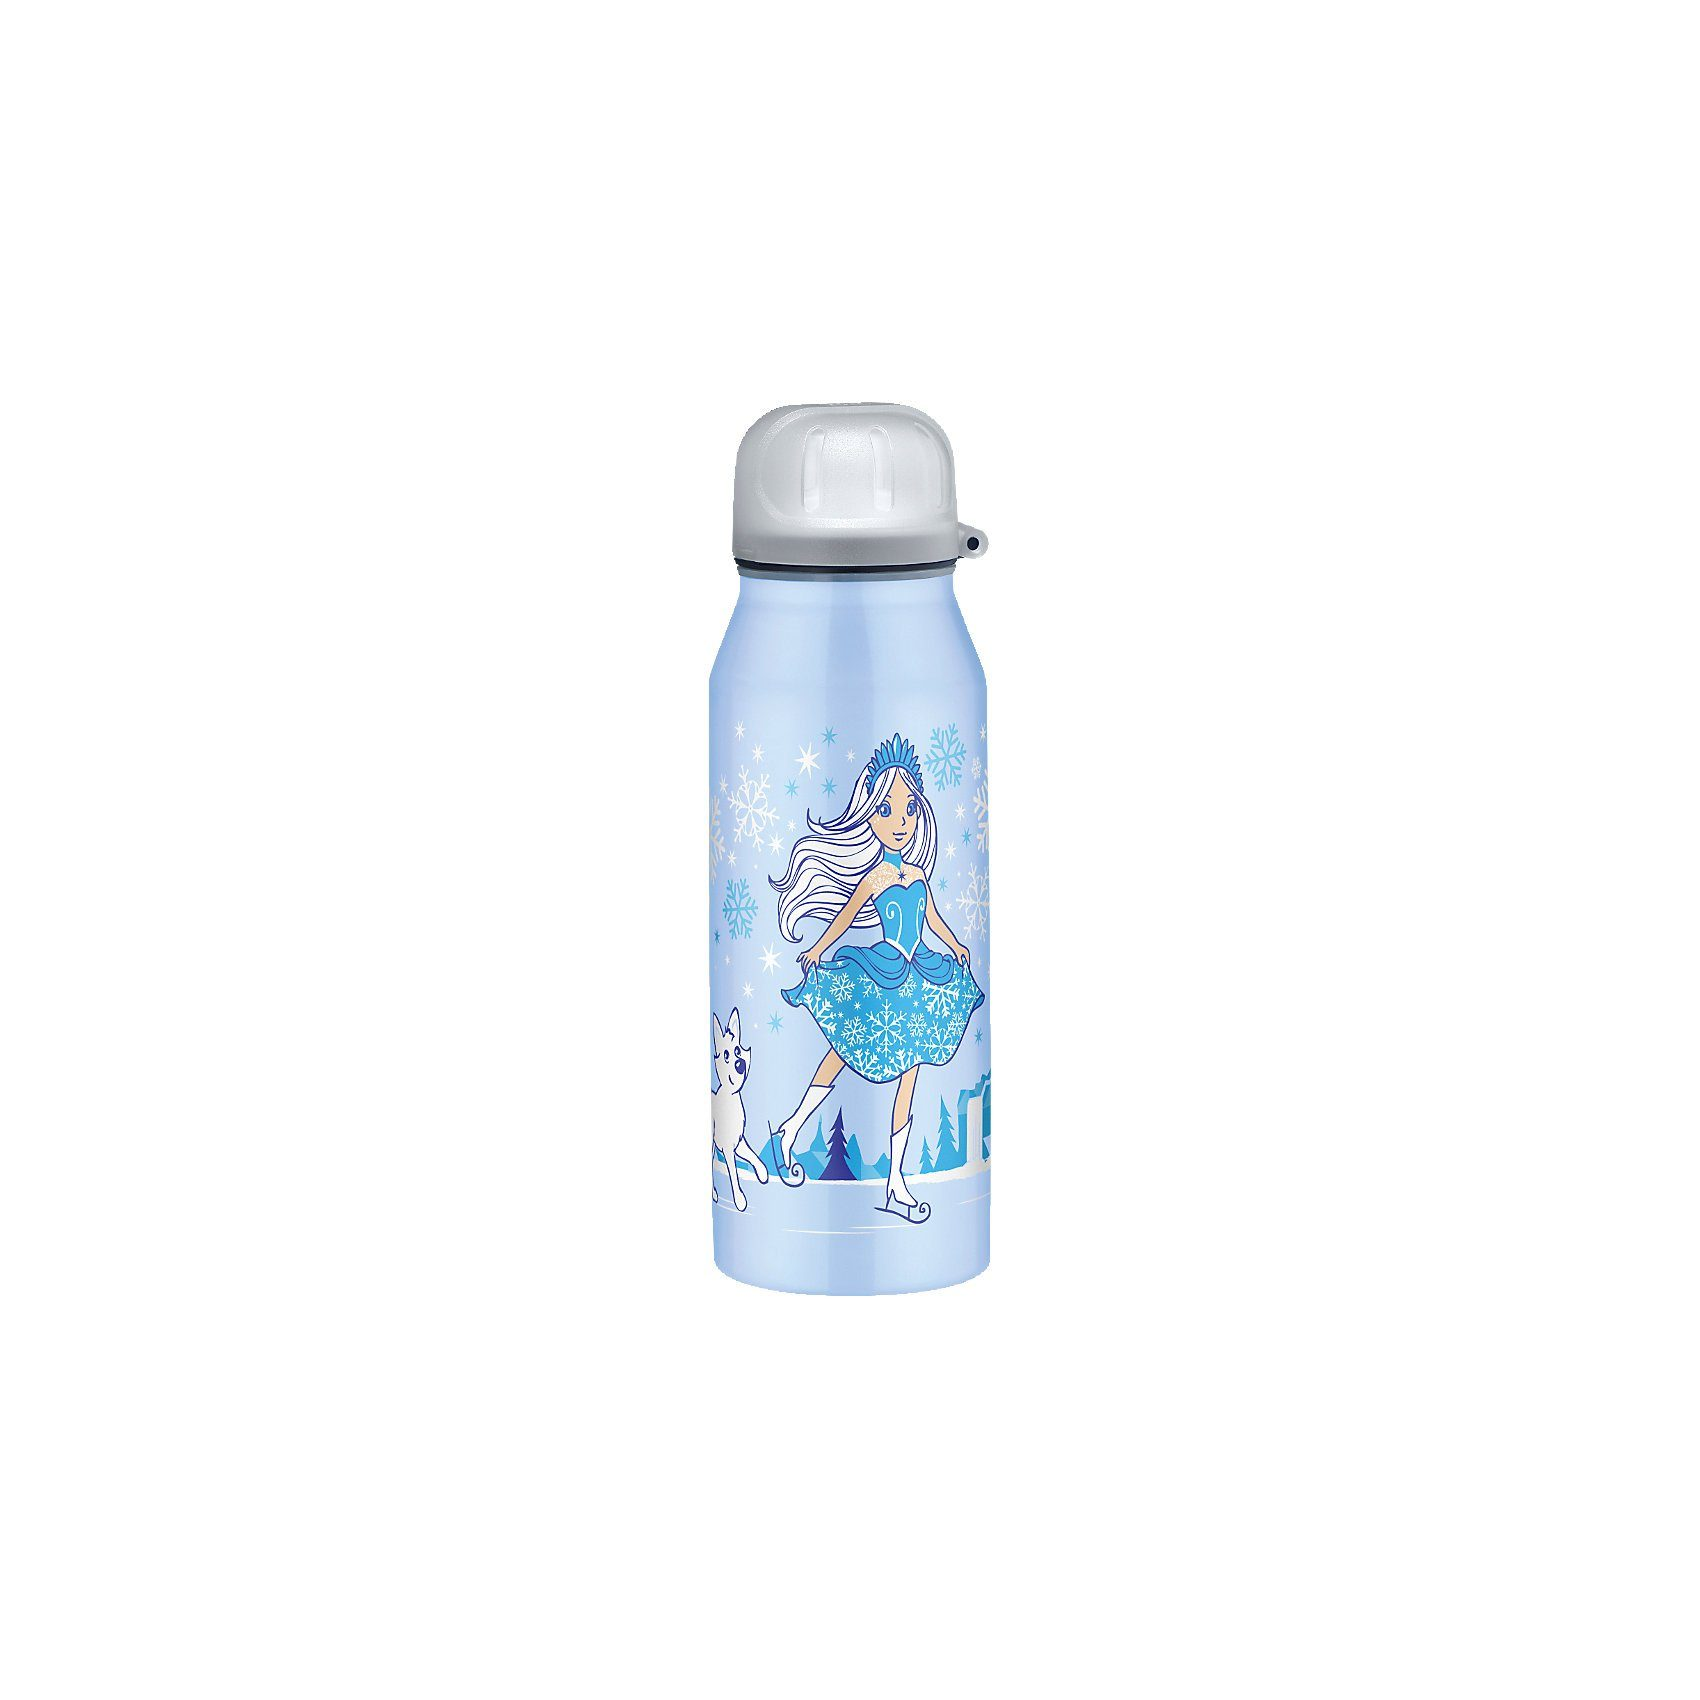 Alfi Isolier-Trinkflasche isoBottle Princess Blue, 350 ml